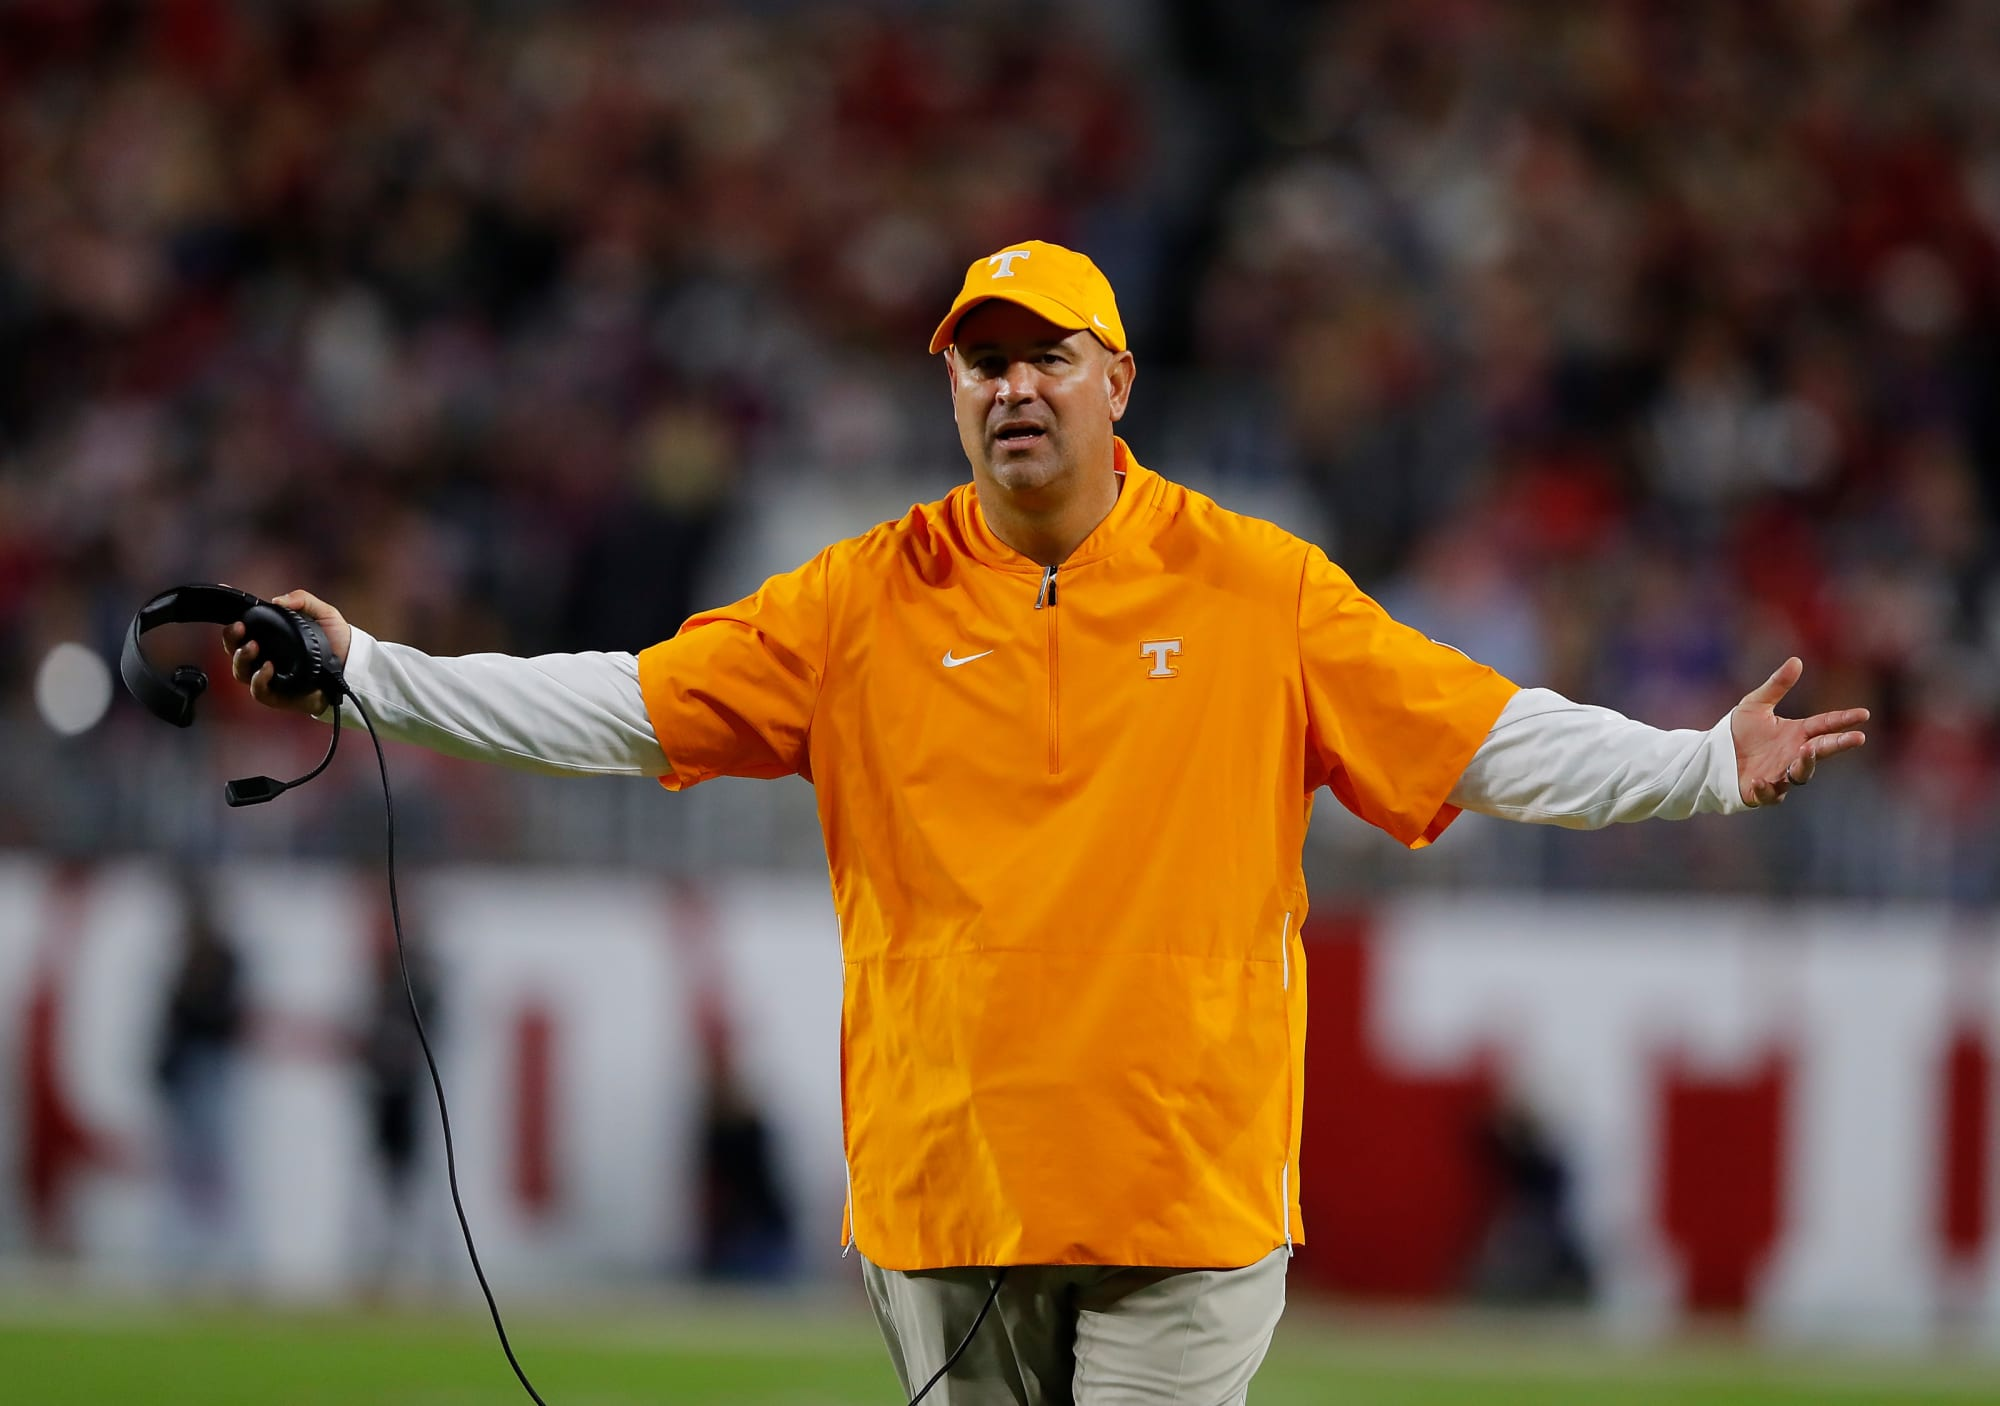 Tennessee Football: Is Jeremy Pruitt's contract extension pre-mature?